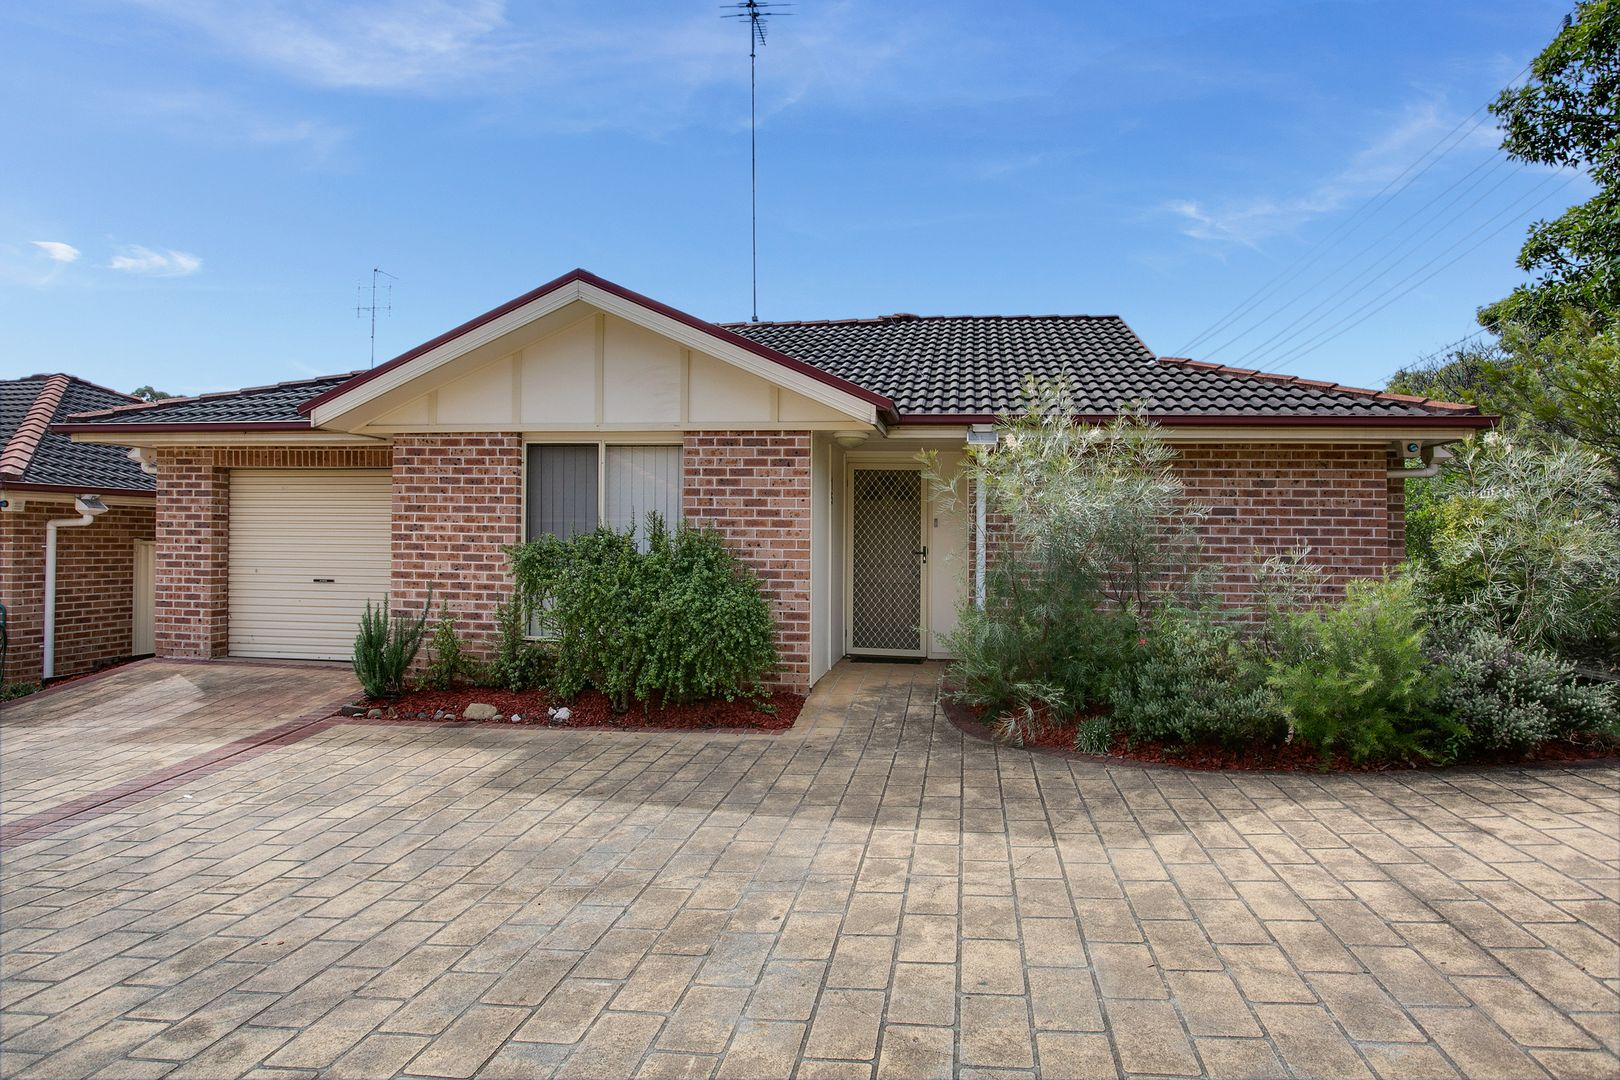 15/139 Stafford Street, Penrith NSW 2750, Image 0